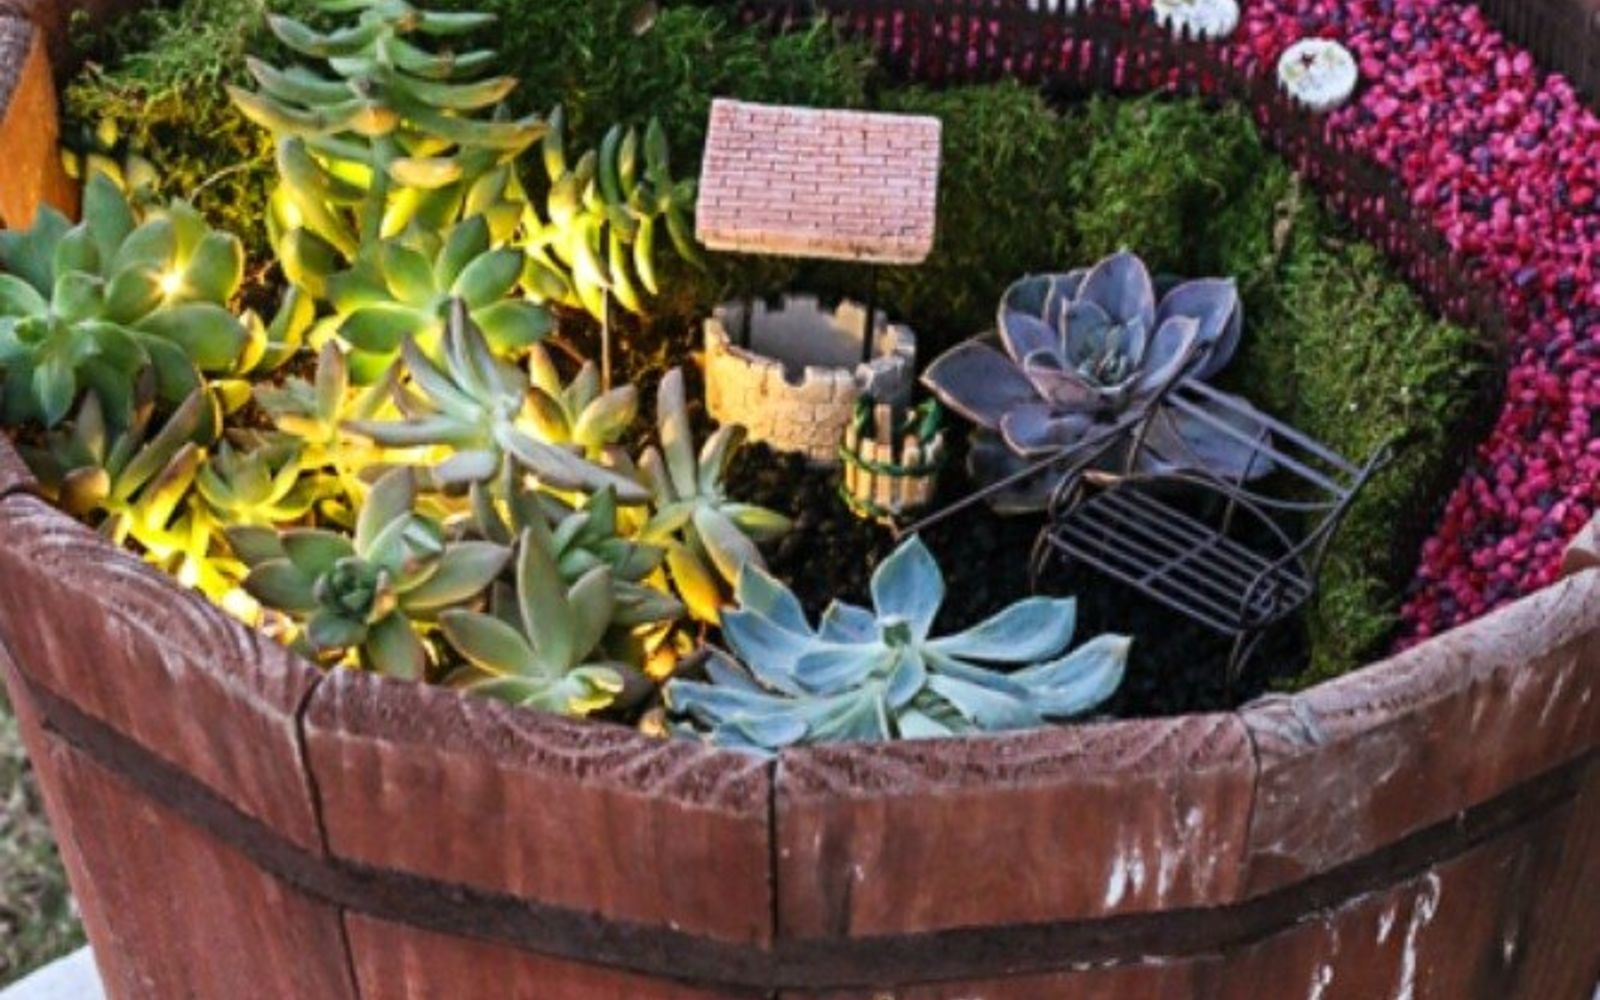 s 17 insanely fun ways to display your favorite succulents, flowers, gardening, succulents, Make a glowing gorgeous fairy garden